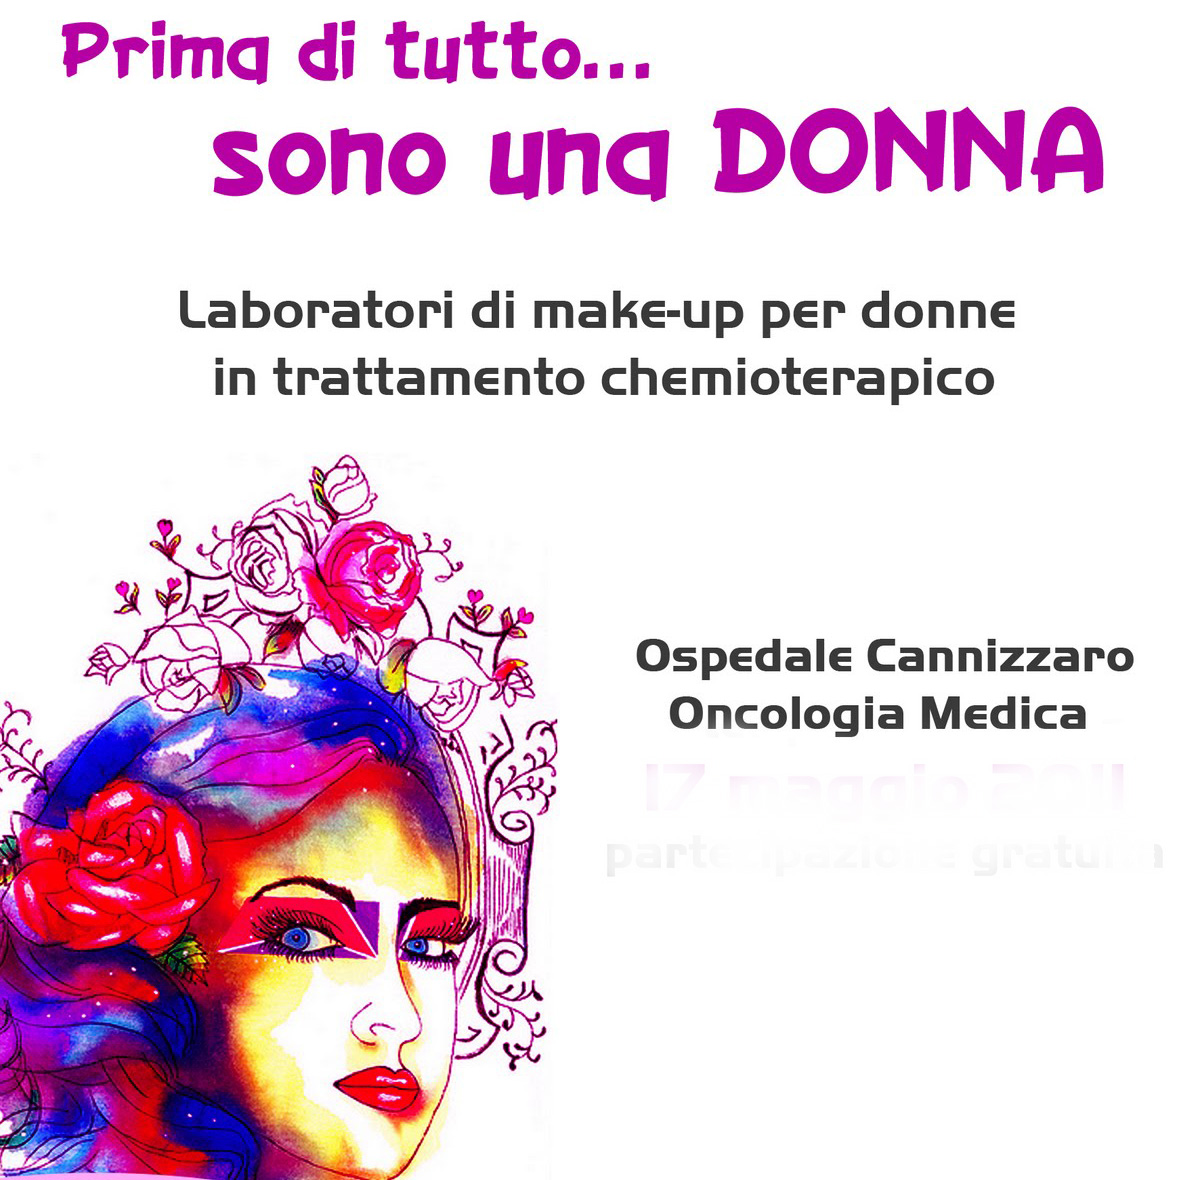 laboratori di make-up per donne in chemioterapia